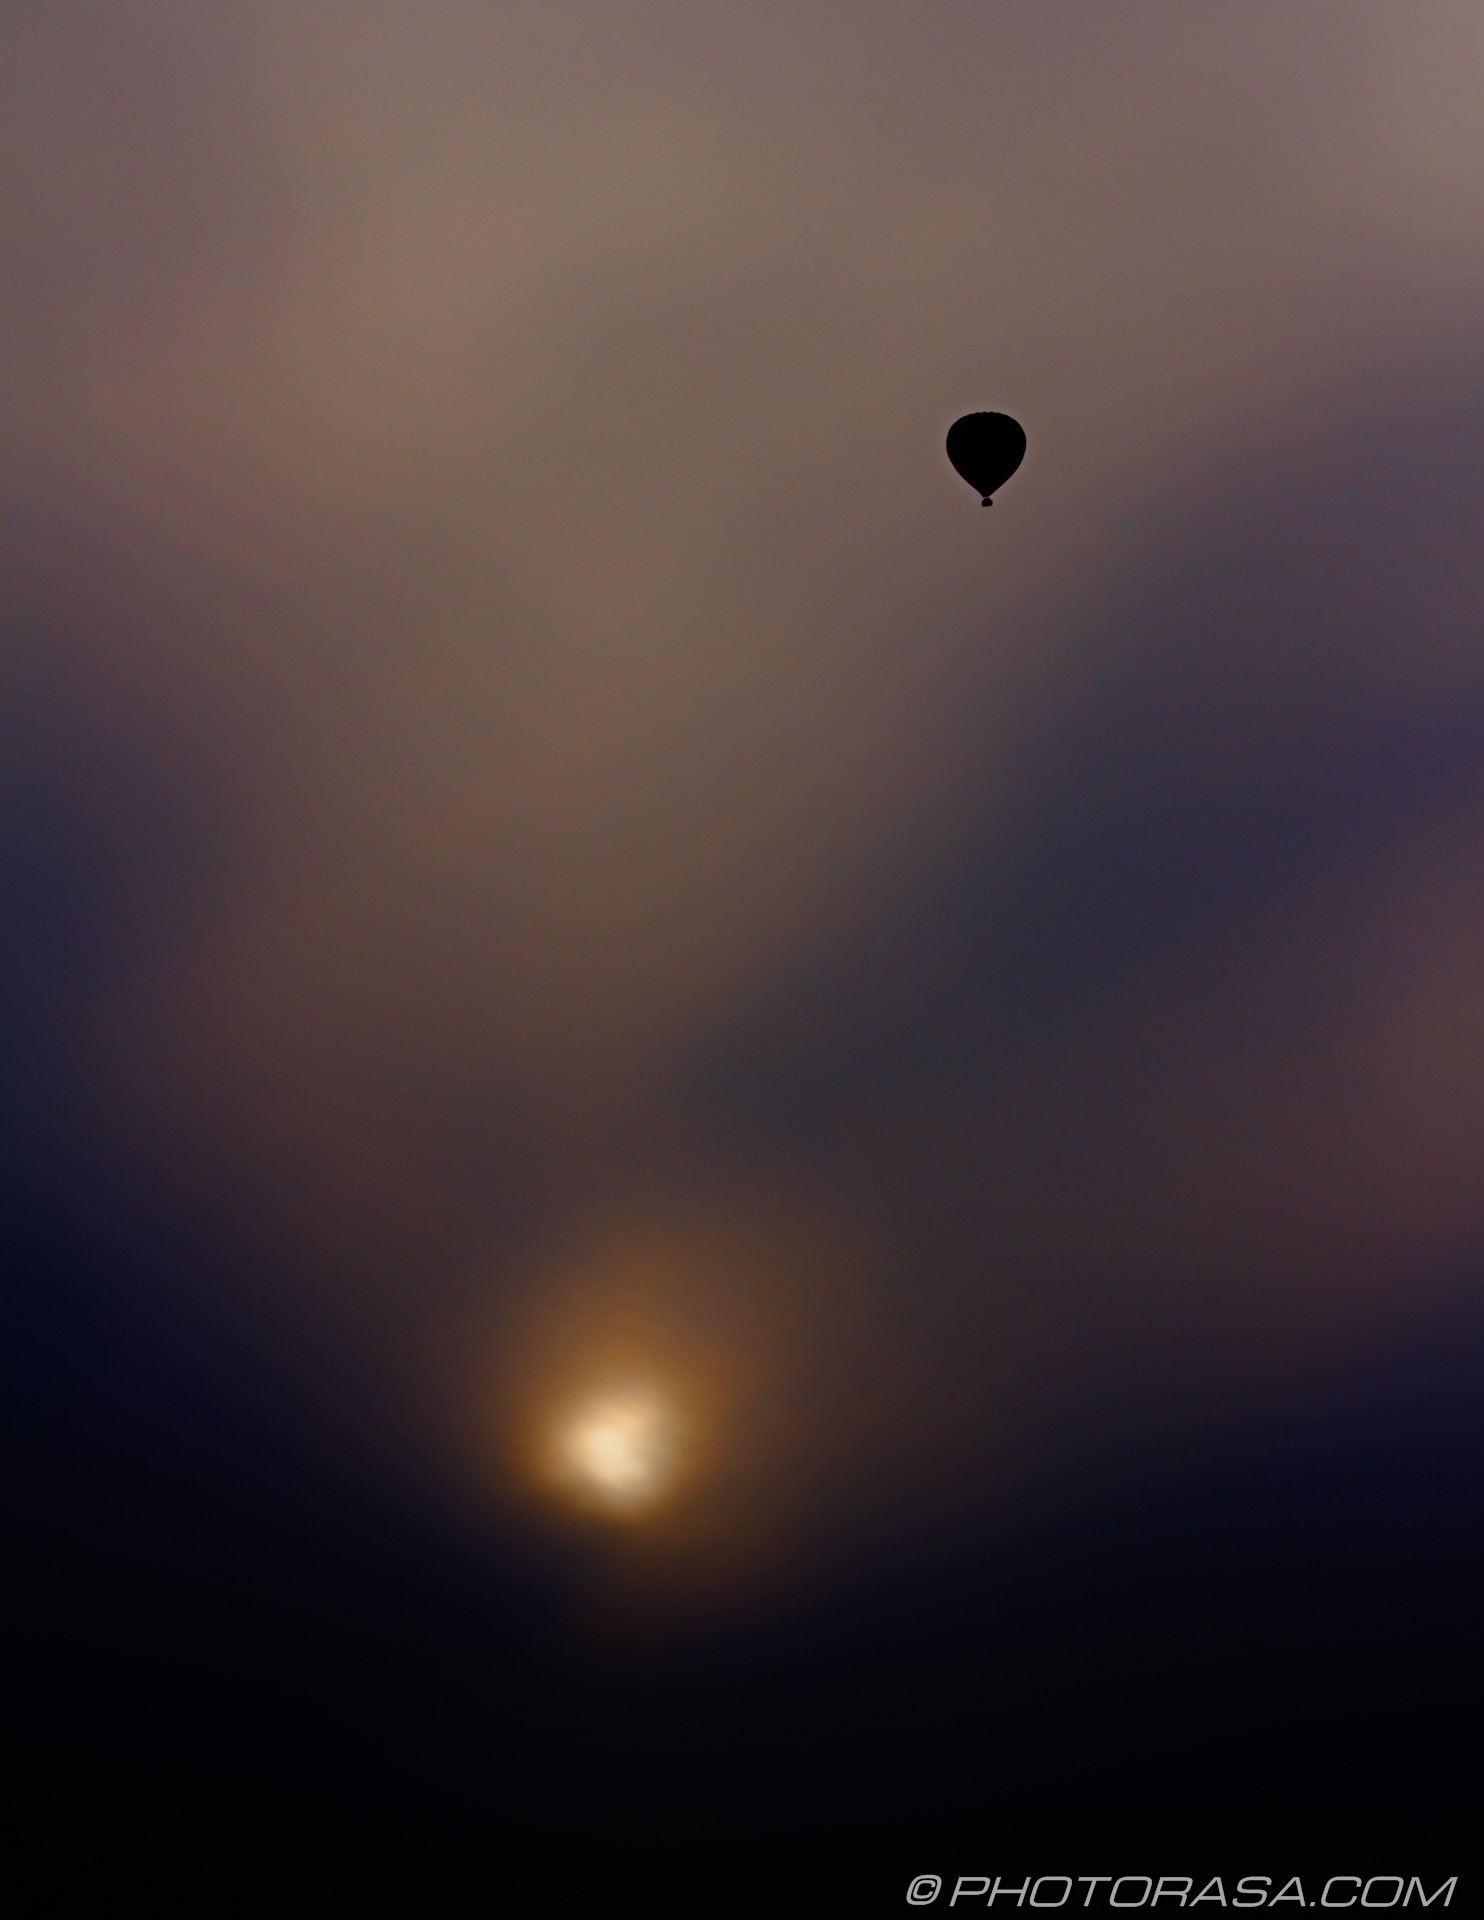 https://photorasa.com/balloons-evening-sky/hot-air-balloon-rising-above-setting-sun/